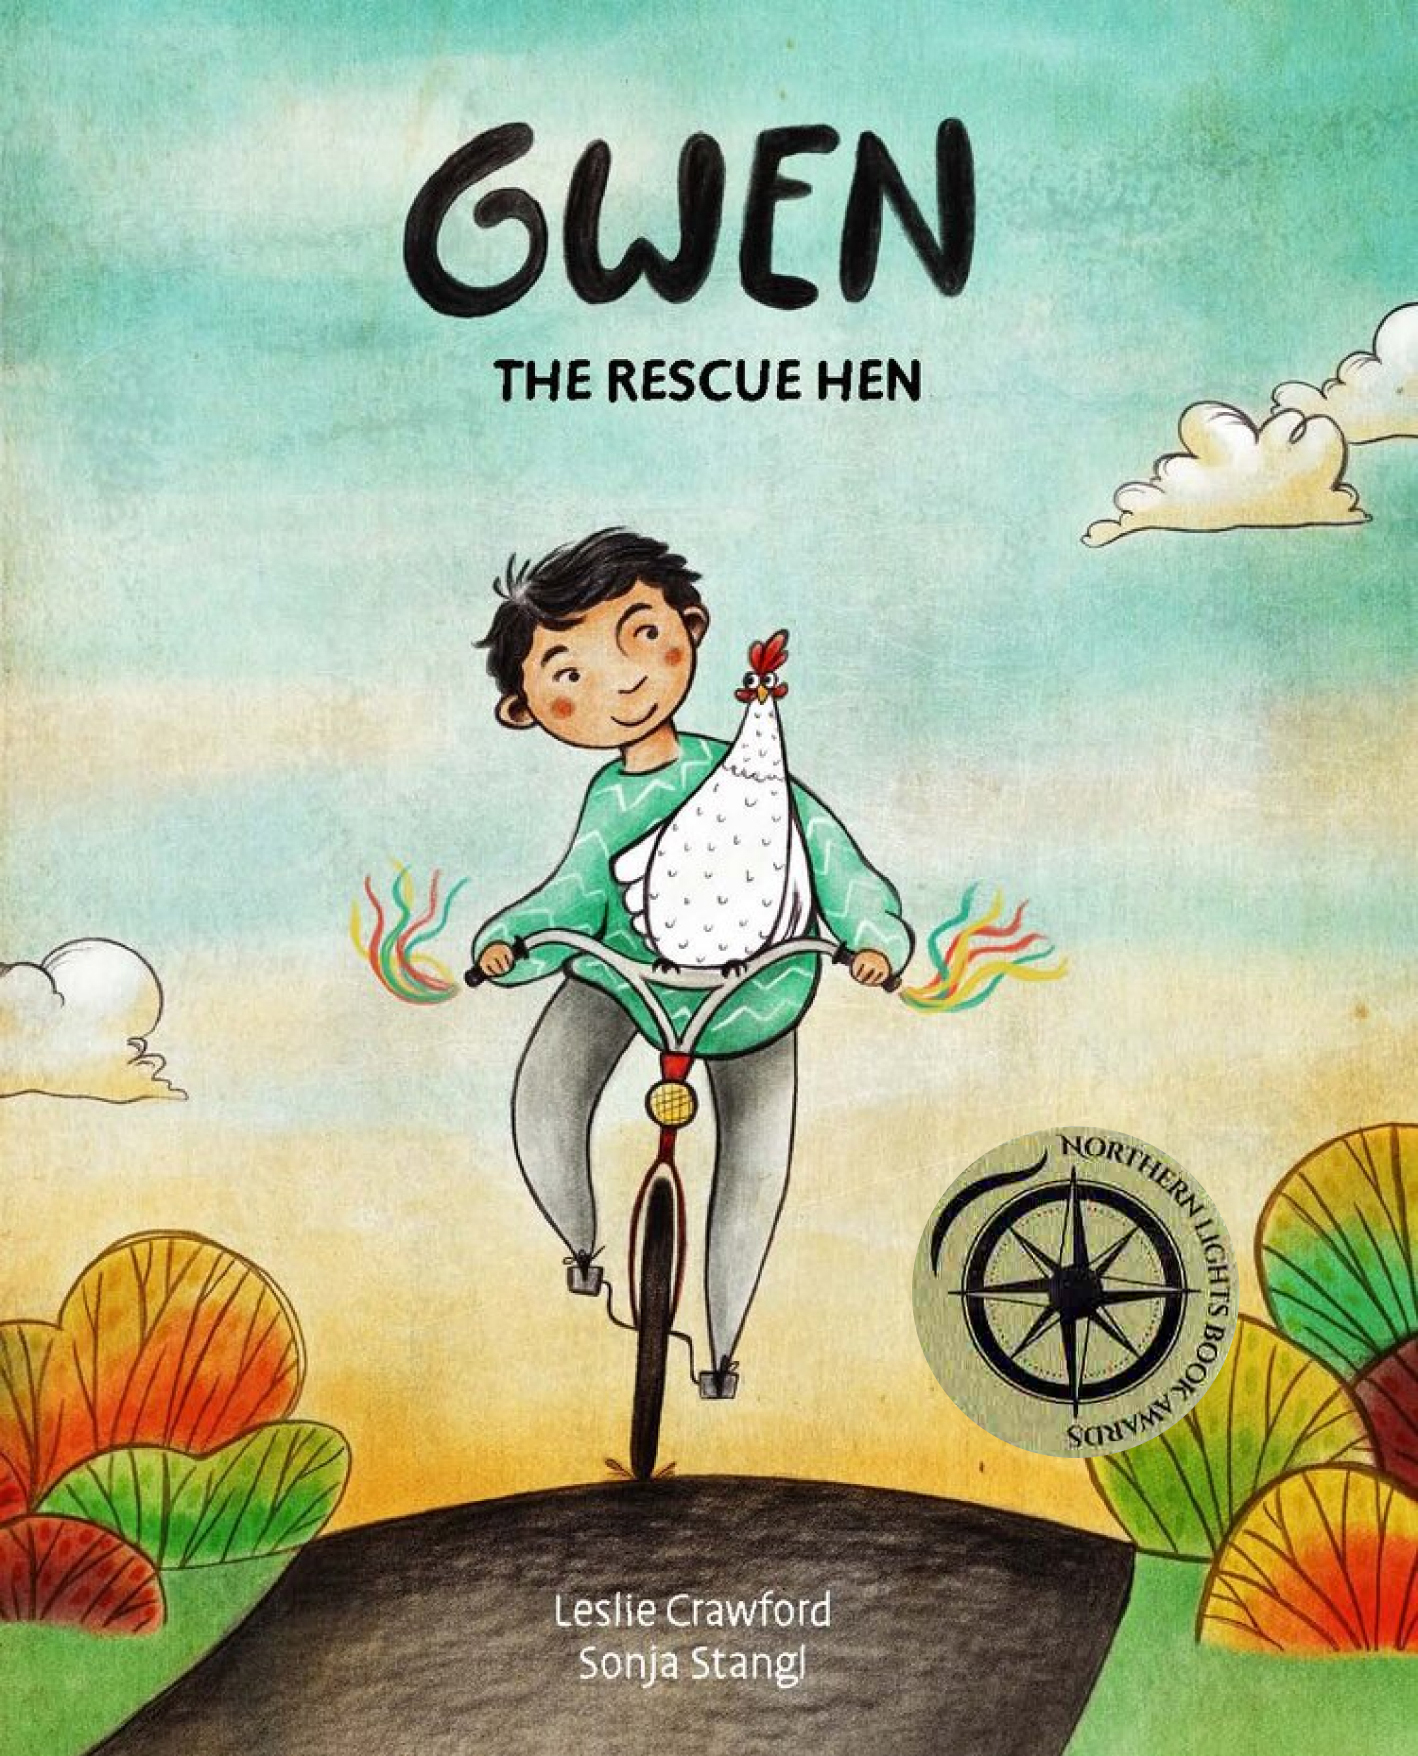 The Gwen the Rescue Hen cover